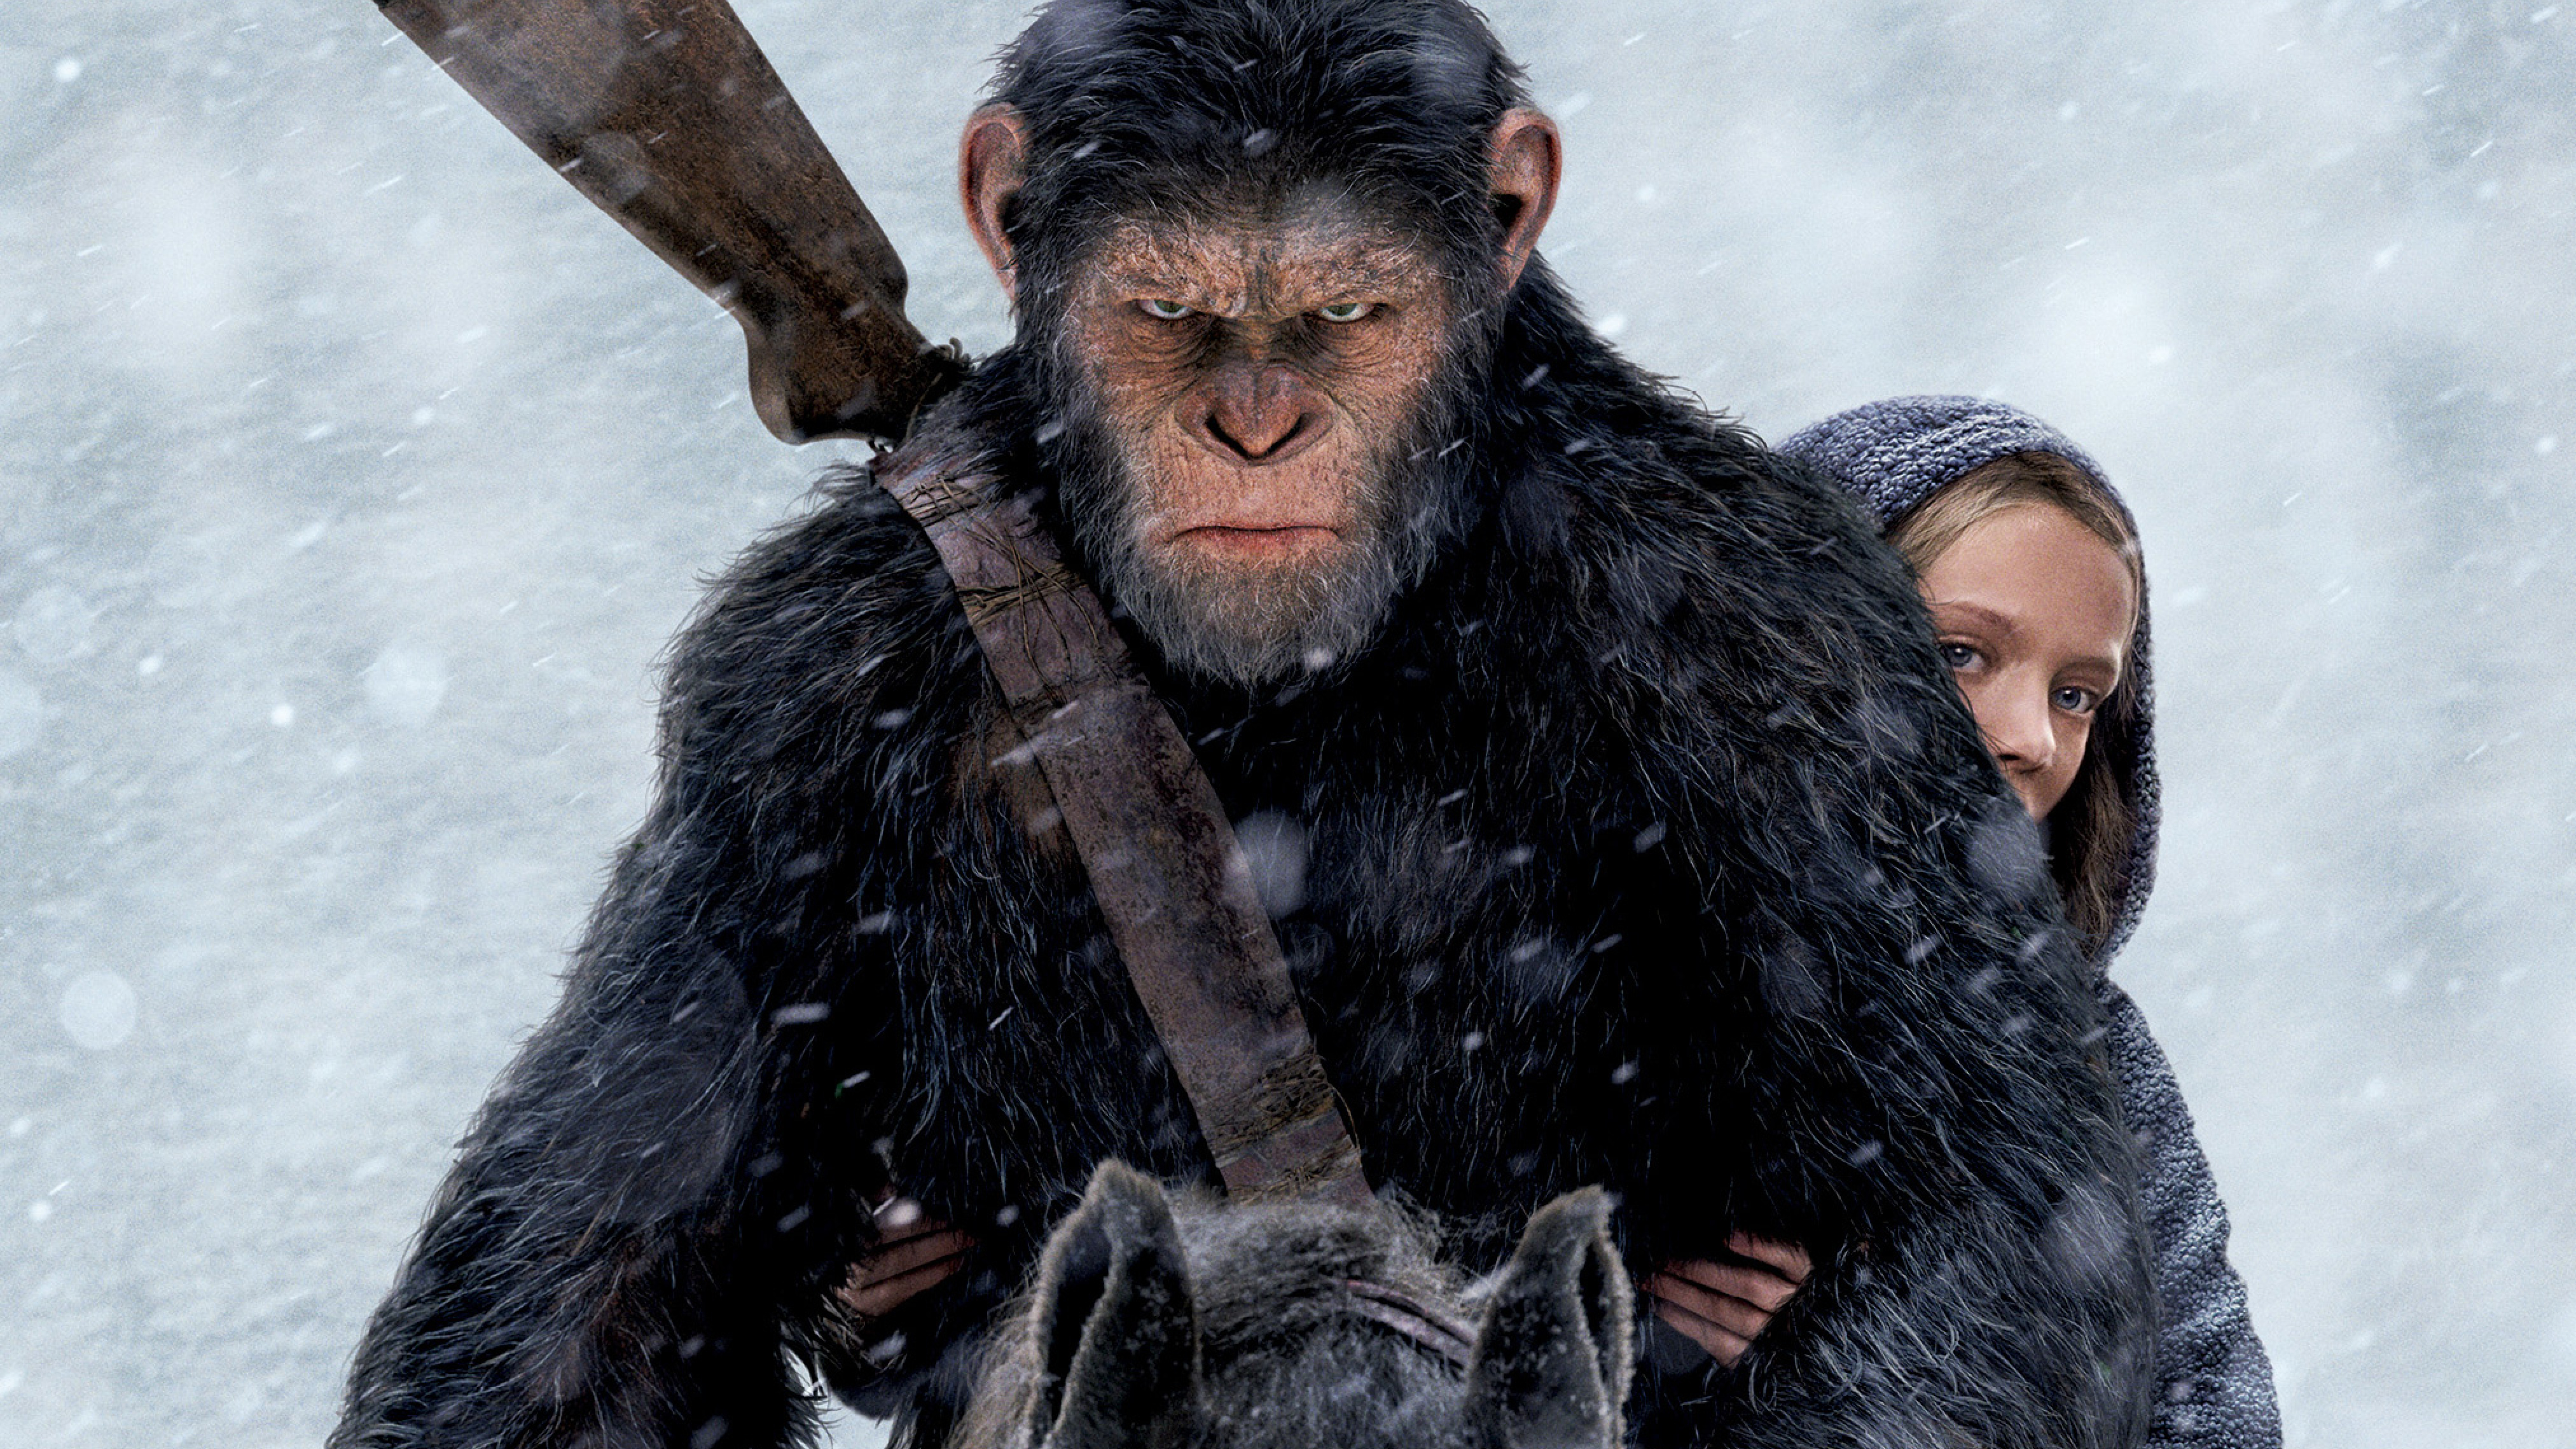 7680x4320 War For The Planet Of The Apes Movie Still 8k Wallpaper